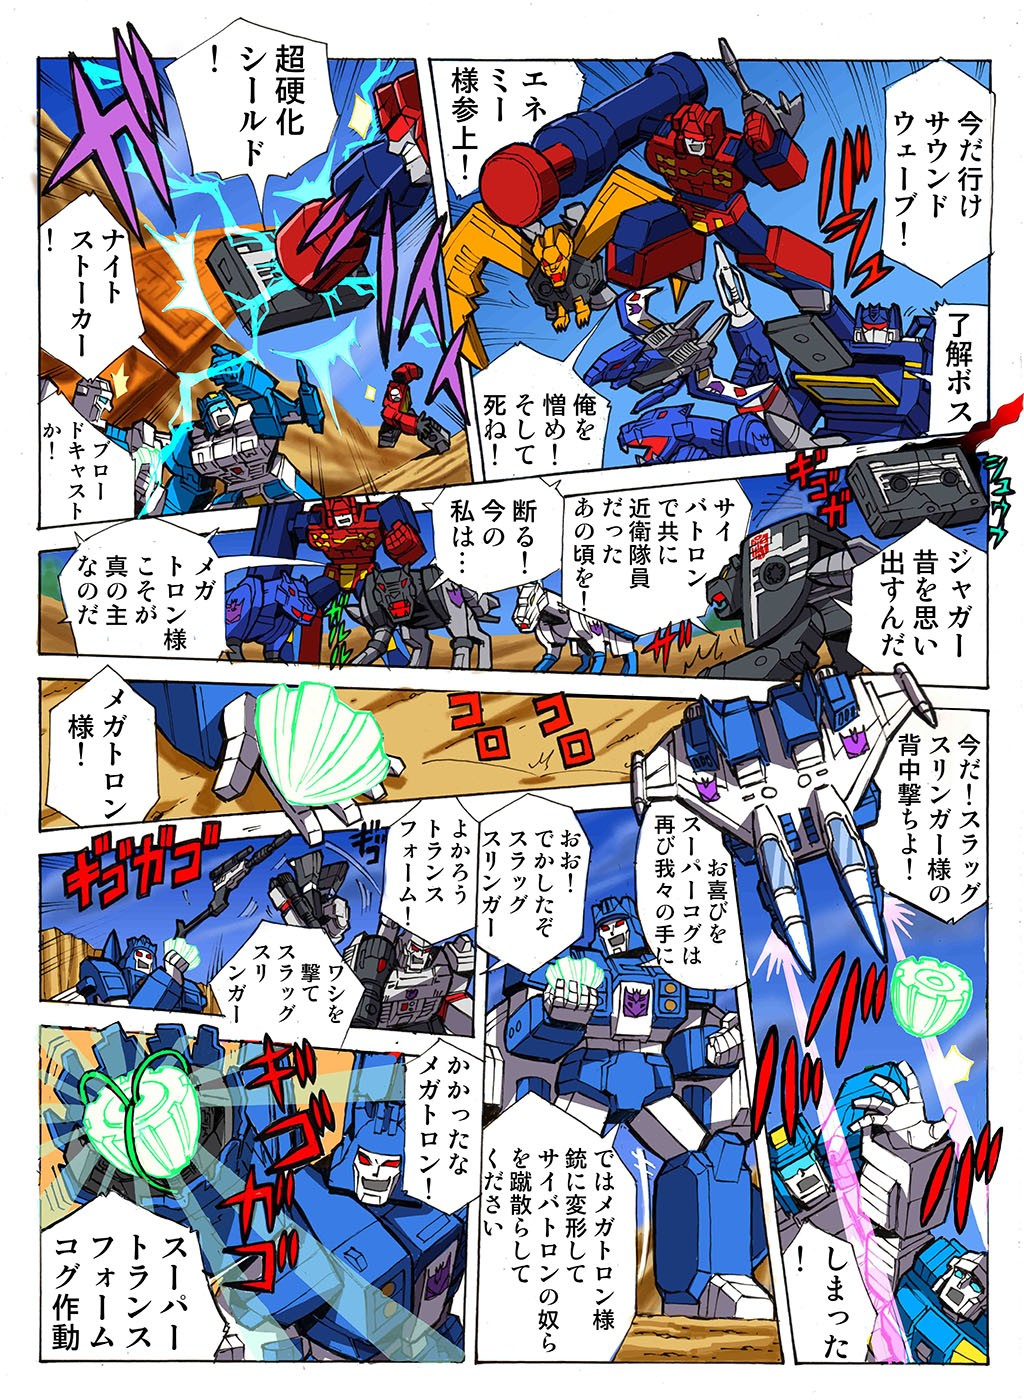 Transformers News: Chapter 49 of Takara Tomy Transformers Legends Manga Now Online